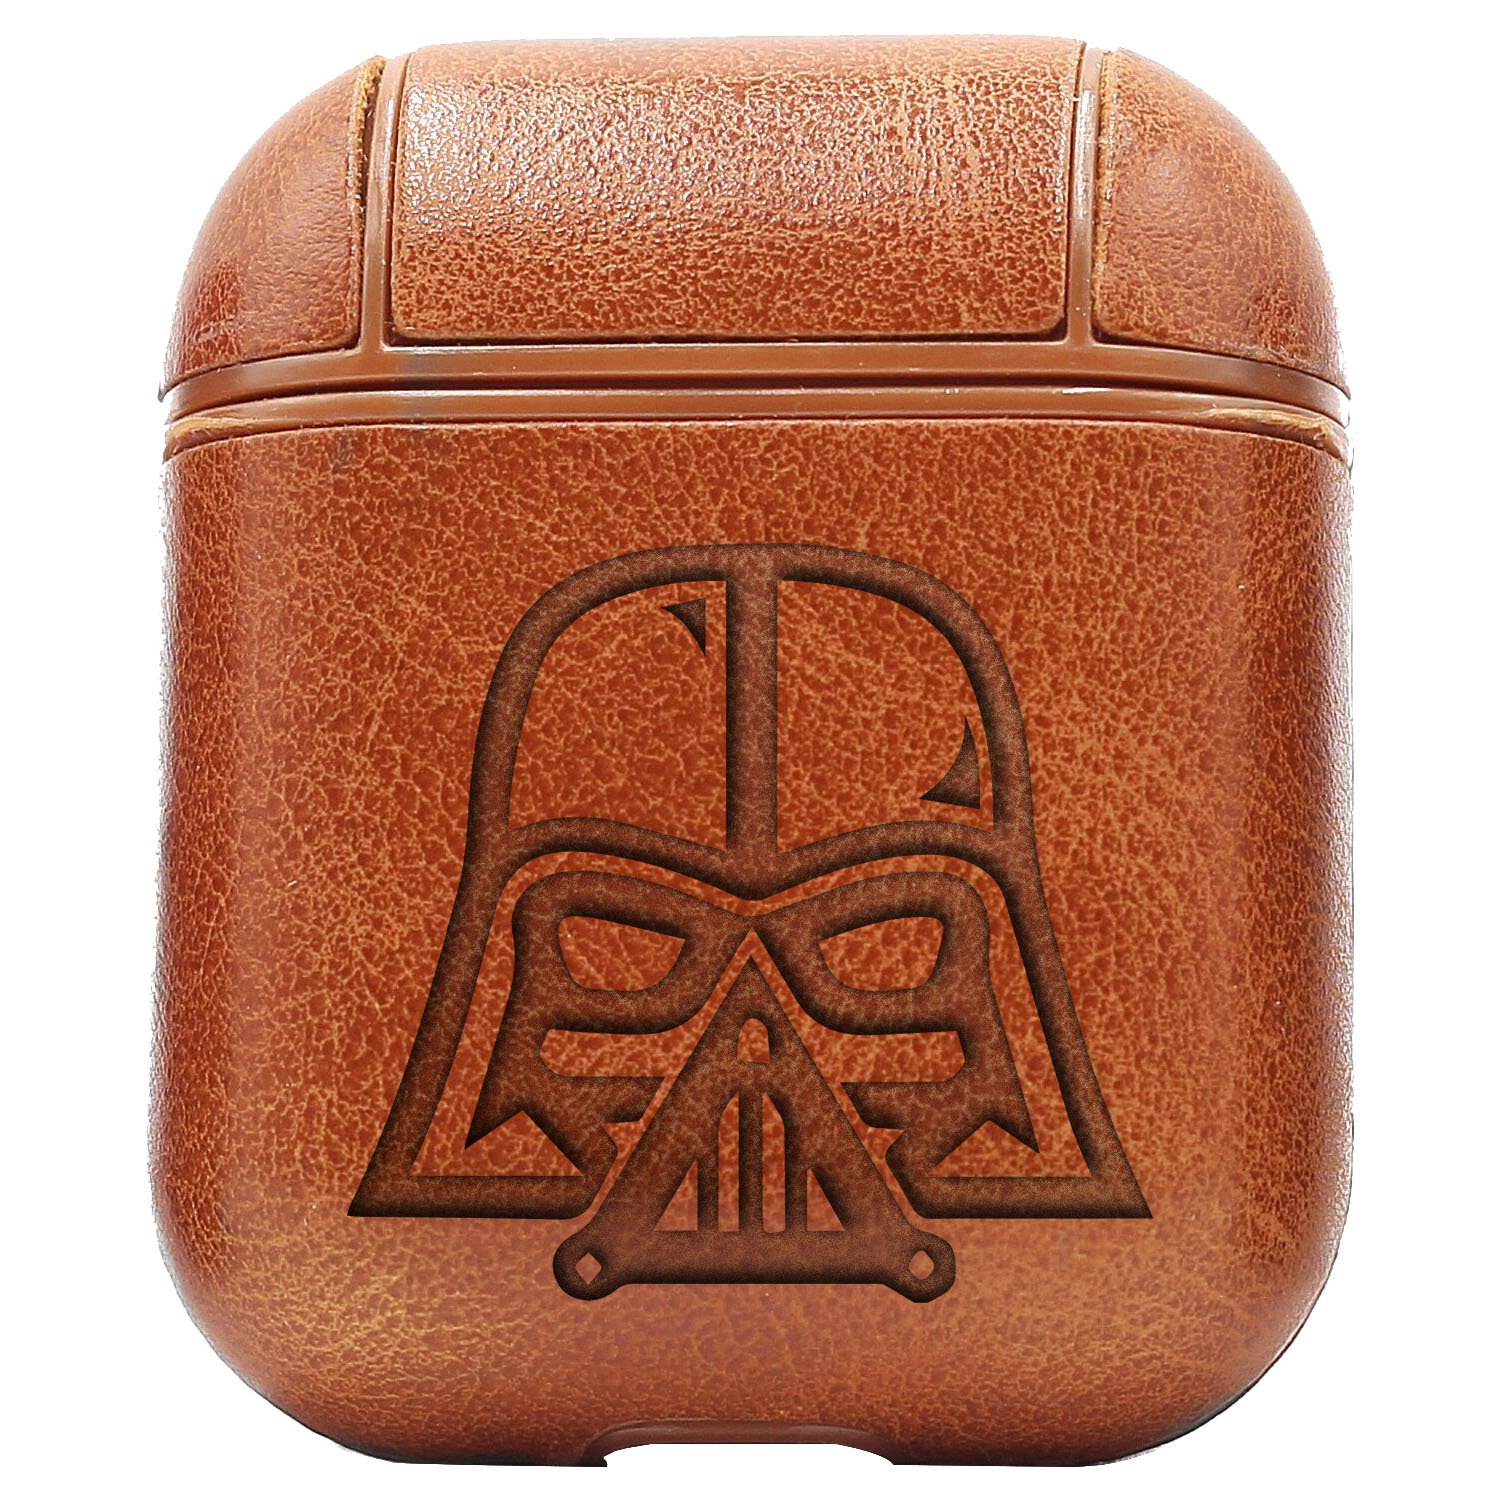 Bao Da Cover Apple Airpods 1 / 2 Premium  Khắc Hình Usa Epic Wars Star Wars